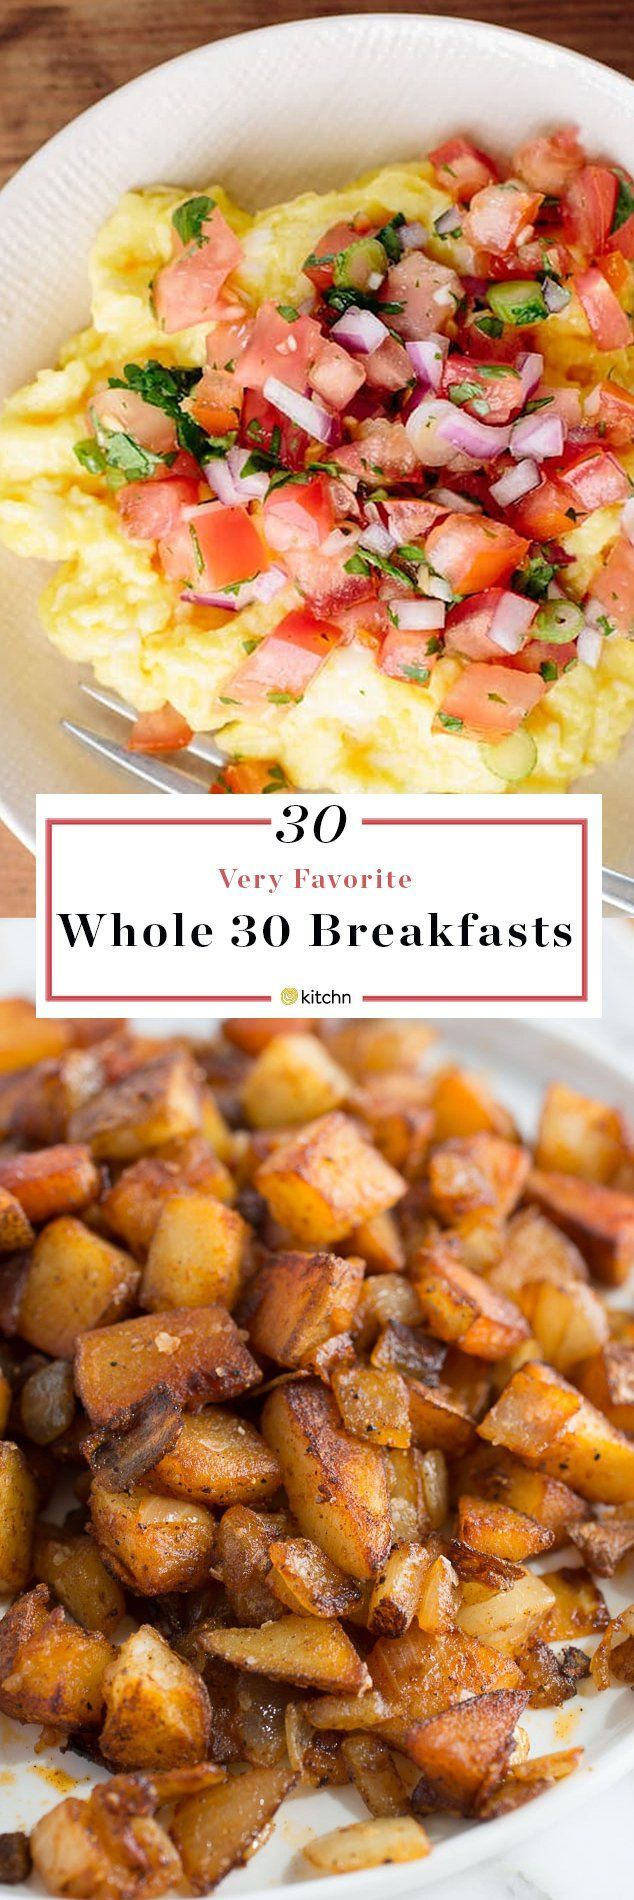 30 Best and Favorite Breakfasts for a Month of the Whole30 or Paleo Diet. Whether it's your first week of Whole 30 or you've been following the diet for a long time, these ideas and recipes for breakfasts and meals will change your mornings! Start out the new year in a healthy way with these eggs, chicken, beef, fish, potatoes, and vegetarian meals. This is a great way to lose weight! #healthydietrecipesvegetarian